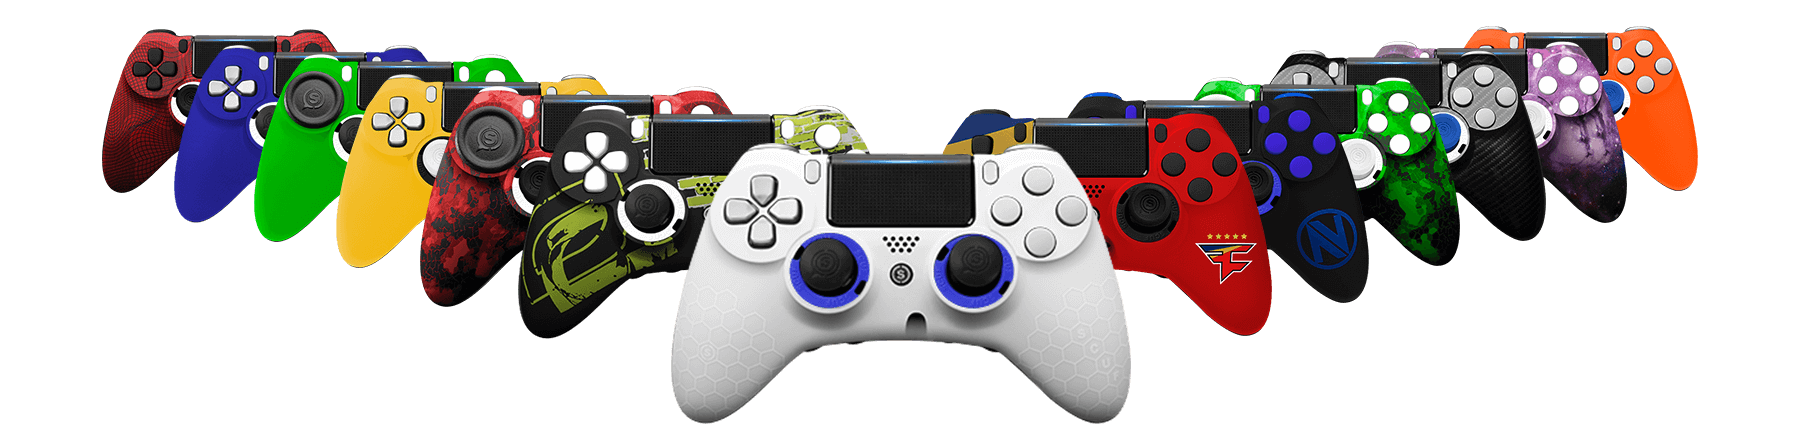 Customizable controllers